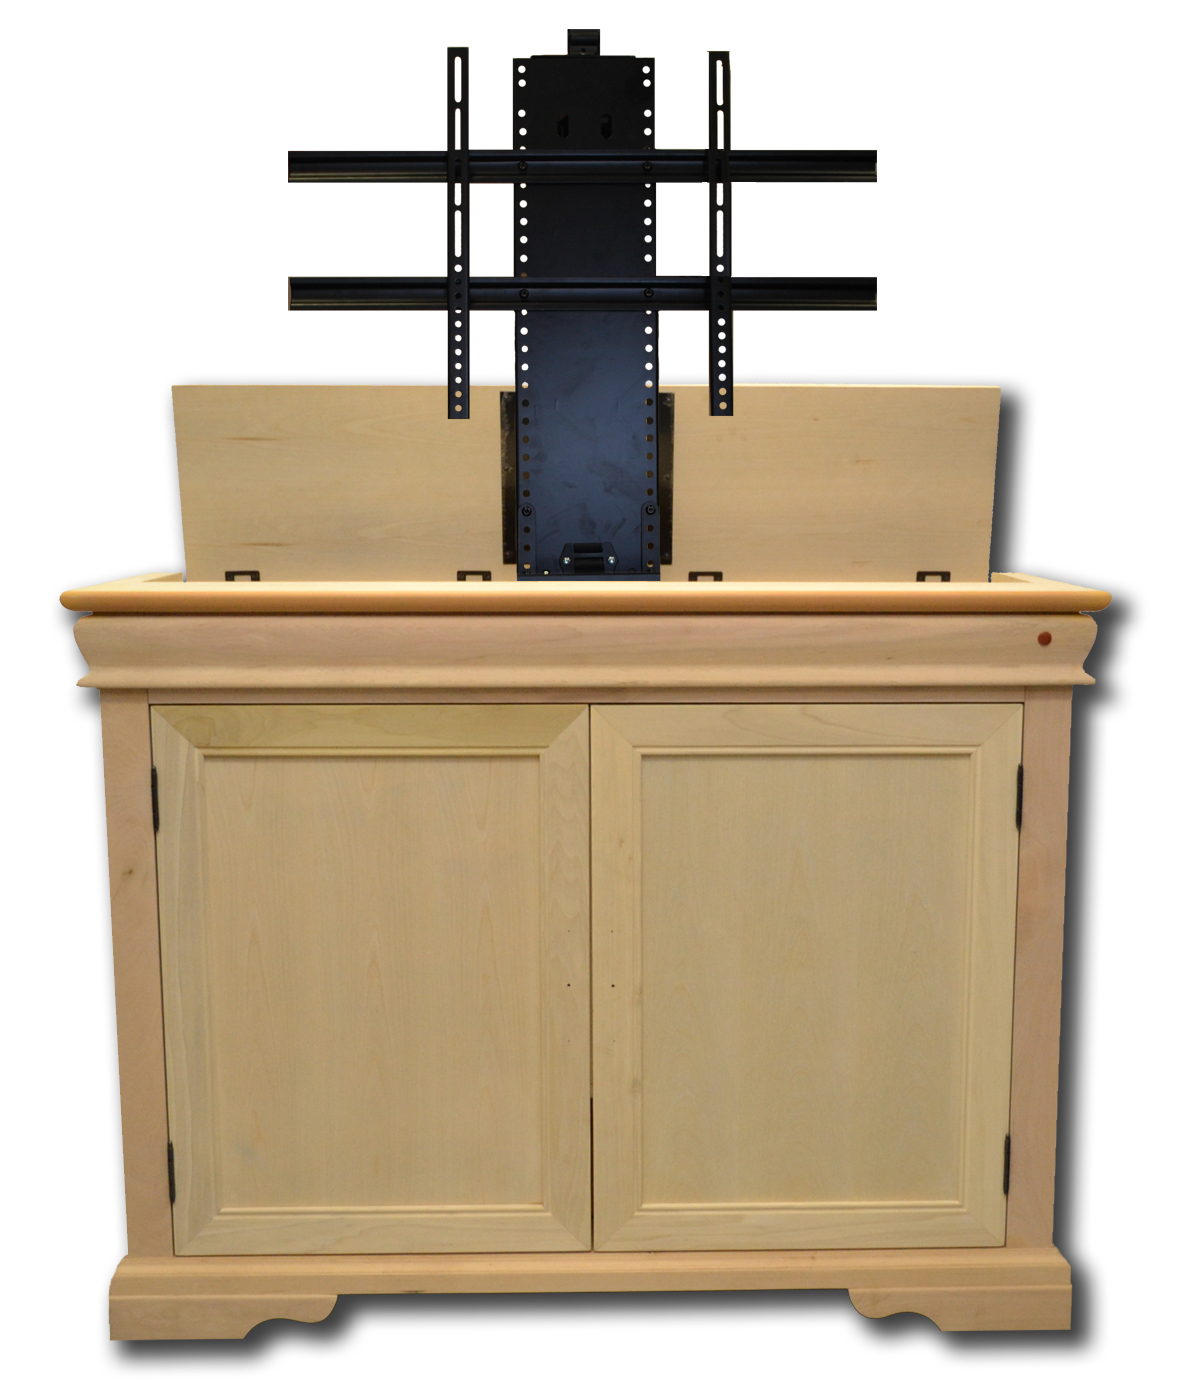 The Tremont Unfinished TV Lift Cabinet For Flat Screen TVs